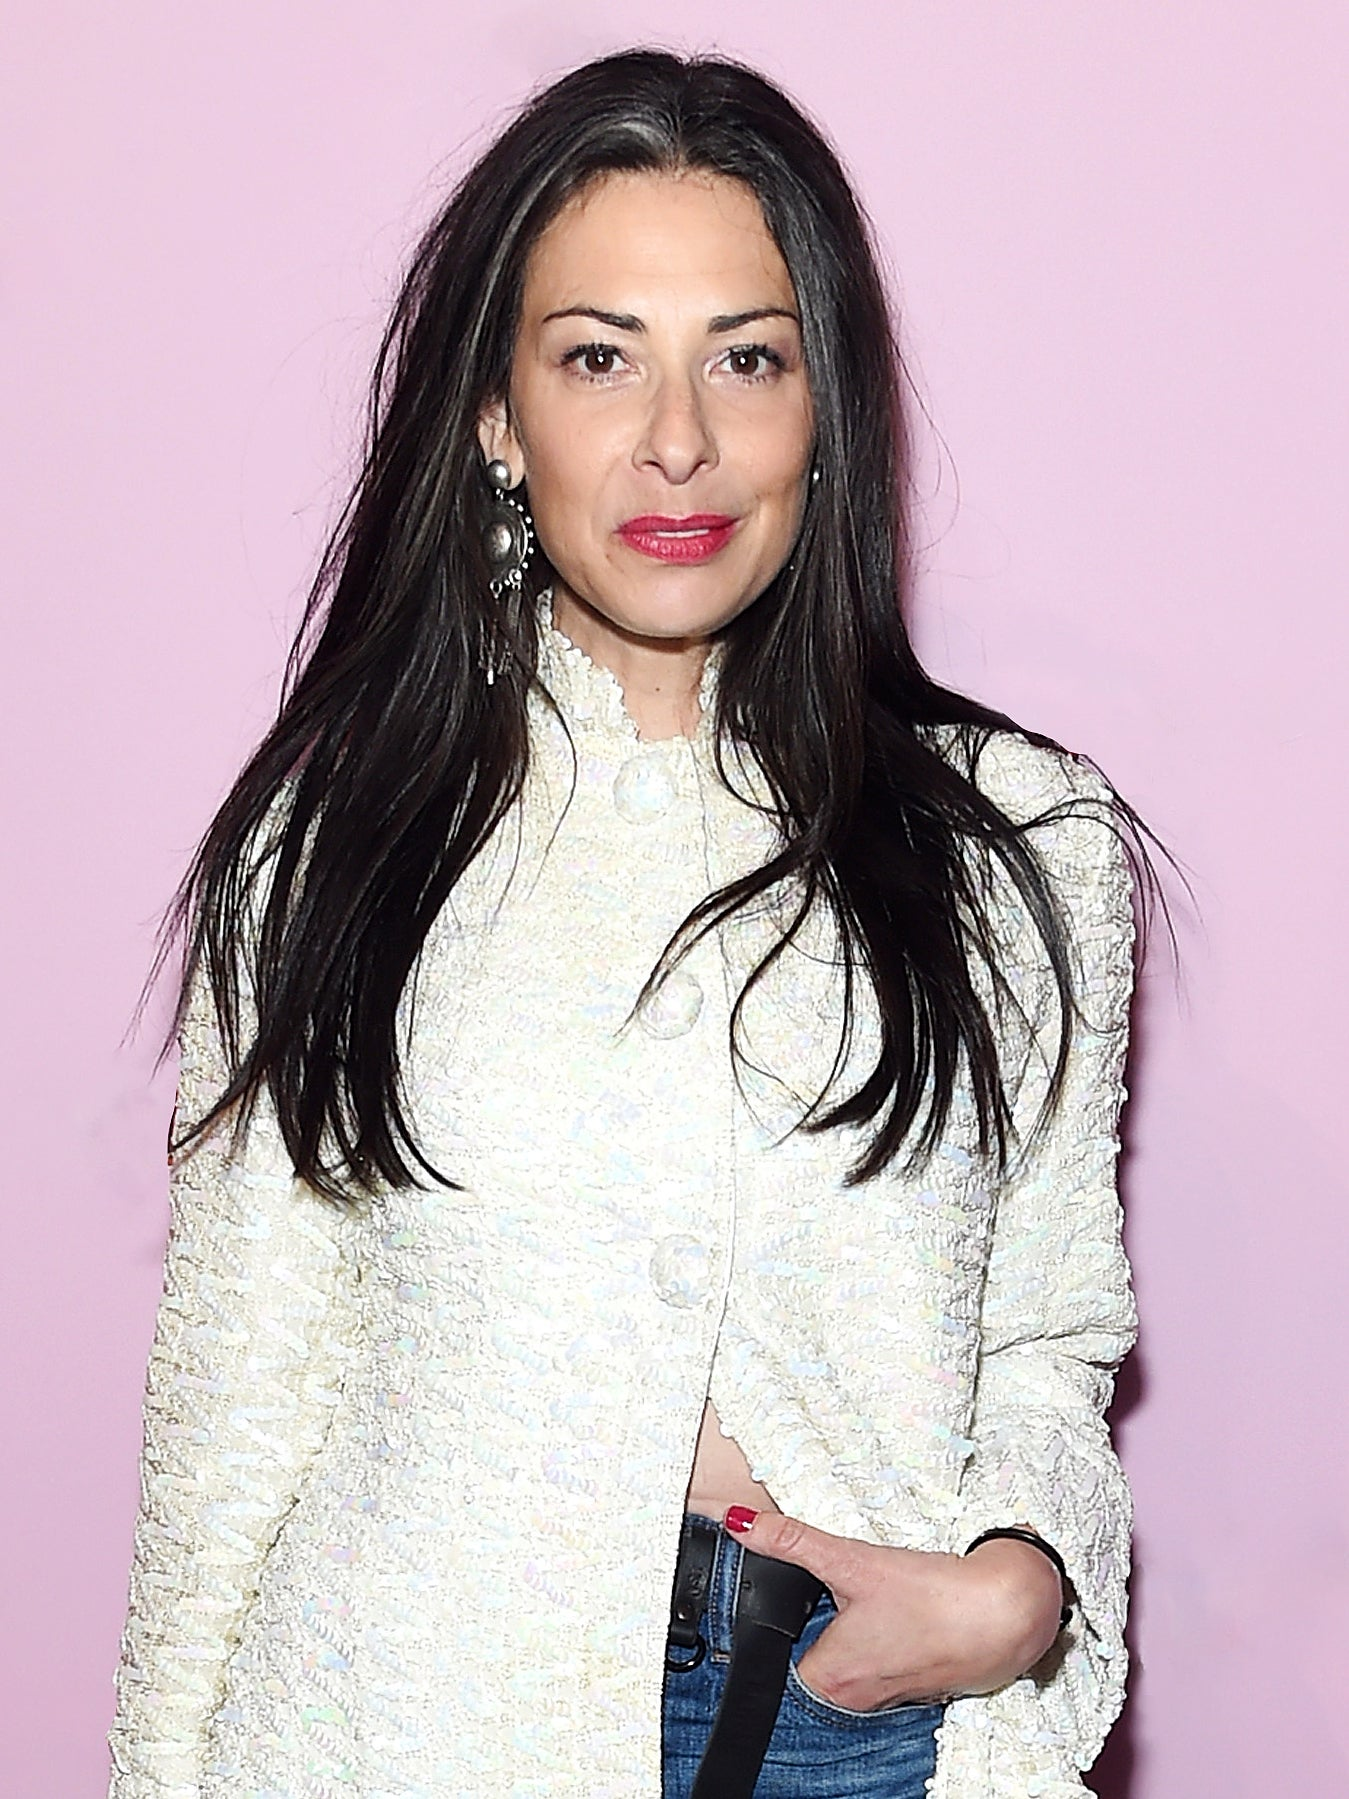 00-FEATURE-stacy-london-Small-Beautiful-Things-domino